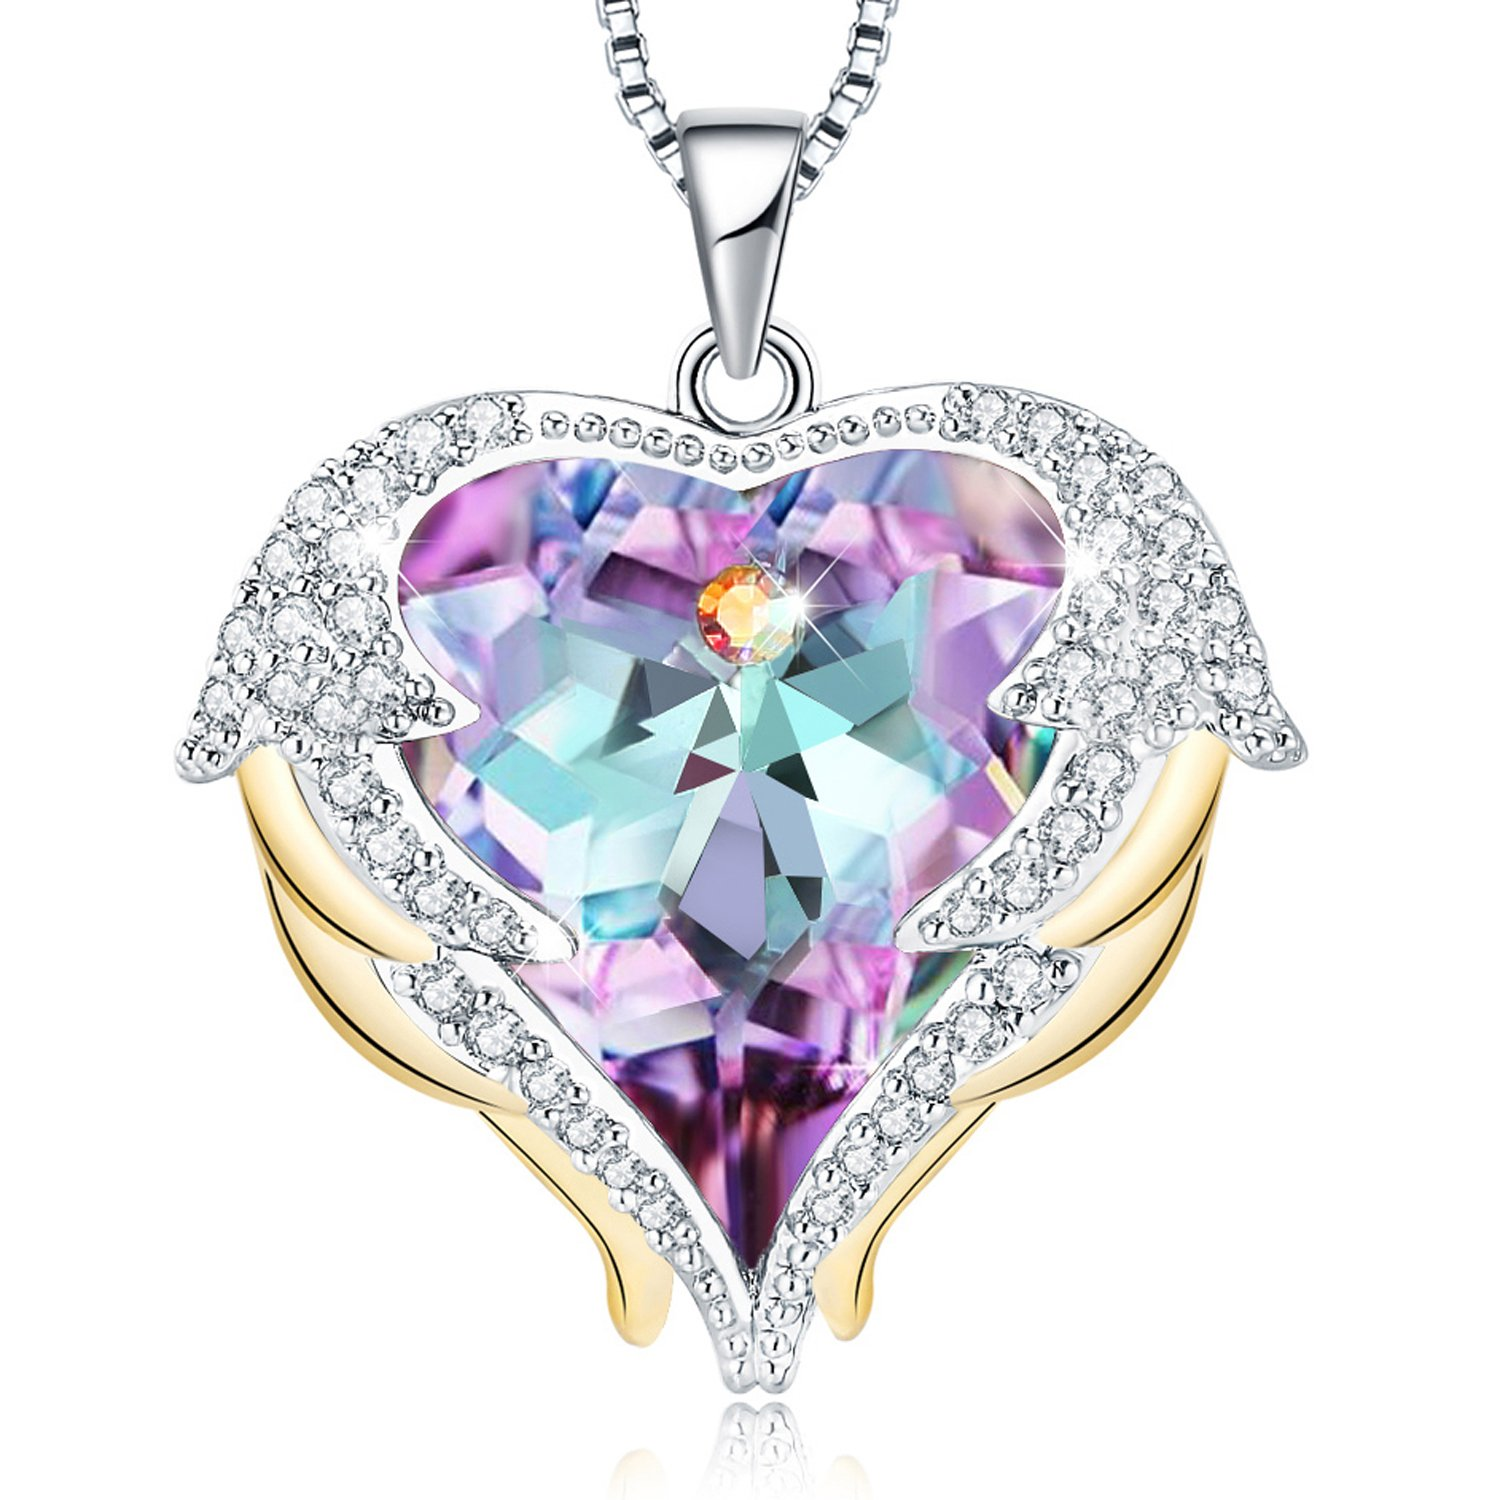 Mevecco ''Heart Of the Ocean'' Heart Pendant Necklace Made with Swarovski Crystals-NK10-Vol Light